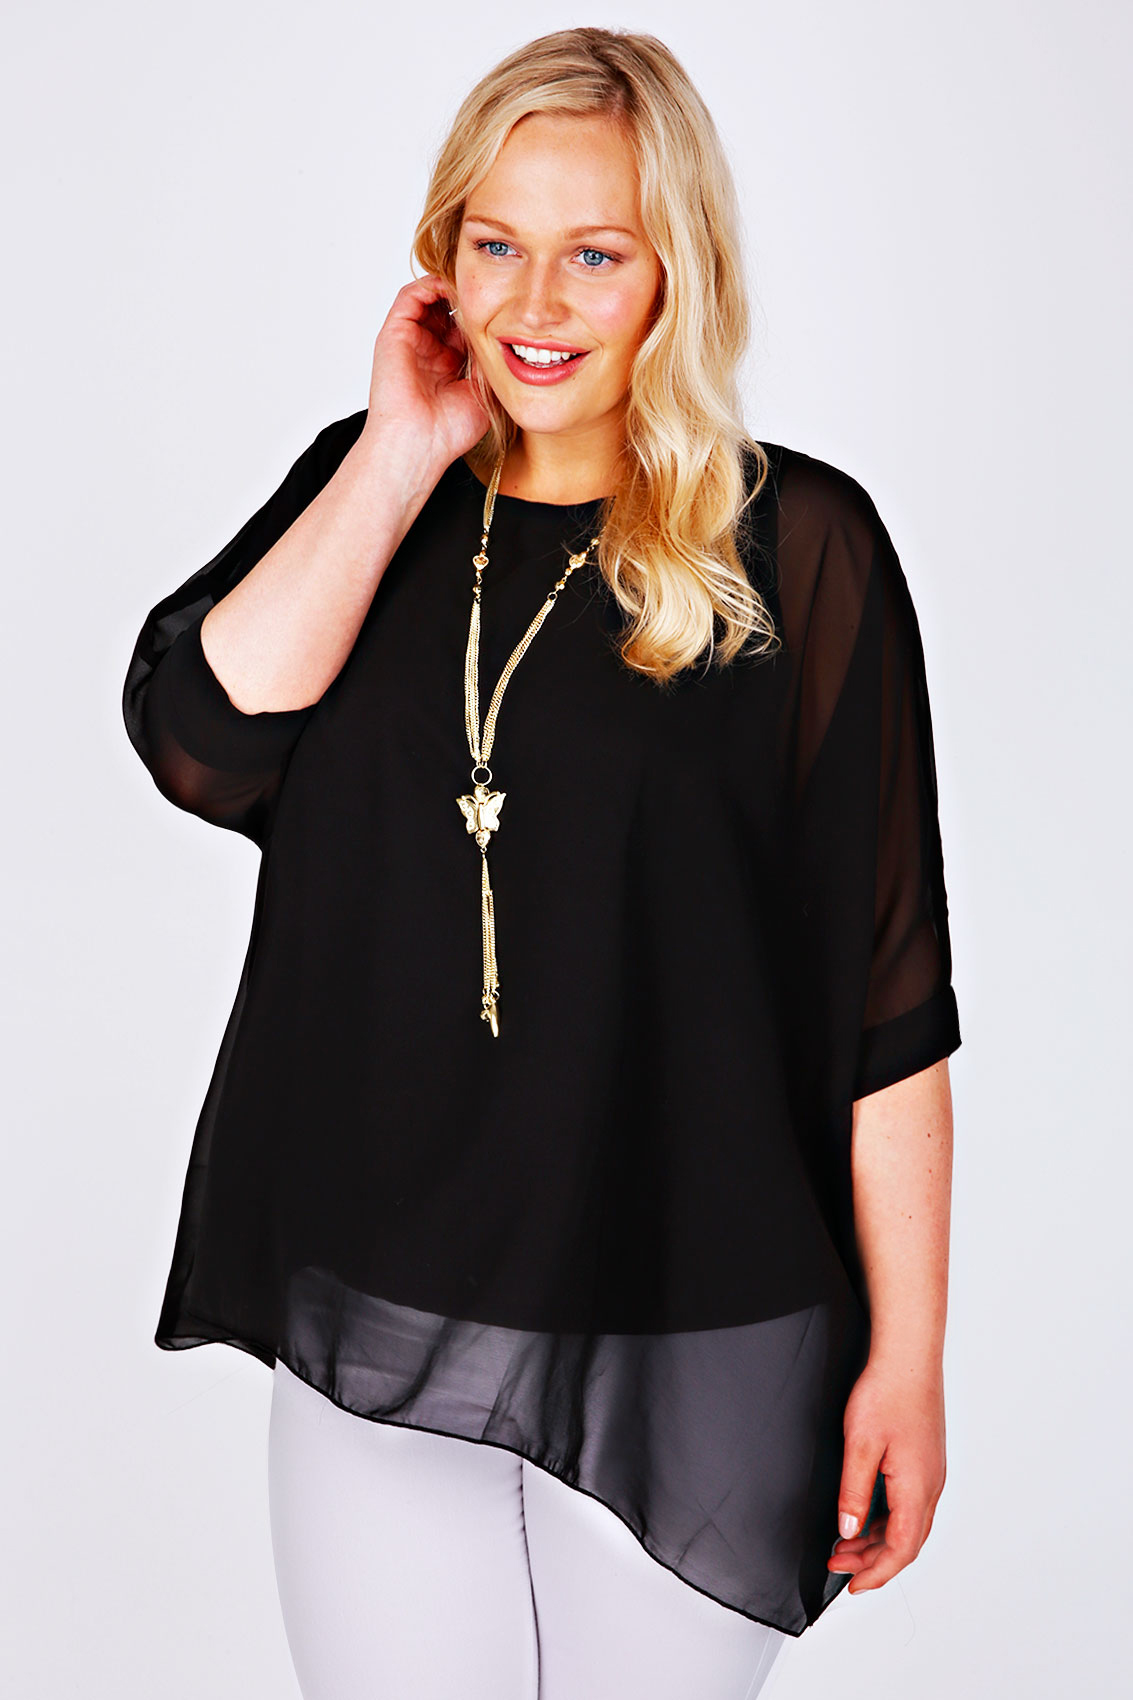 Black chiffon top plus size